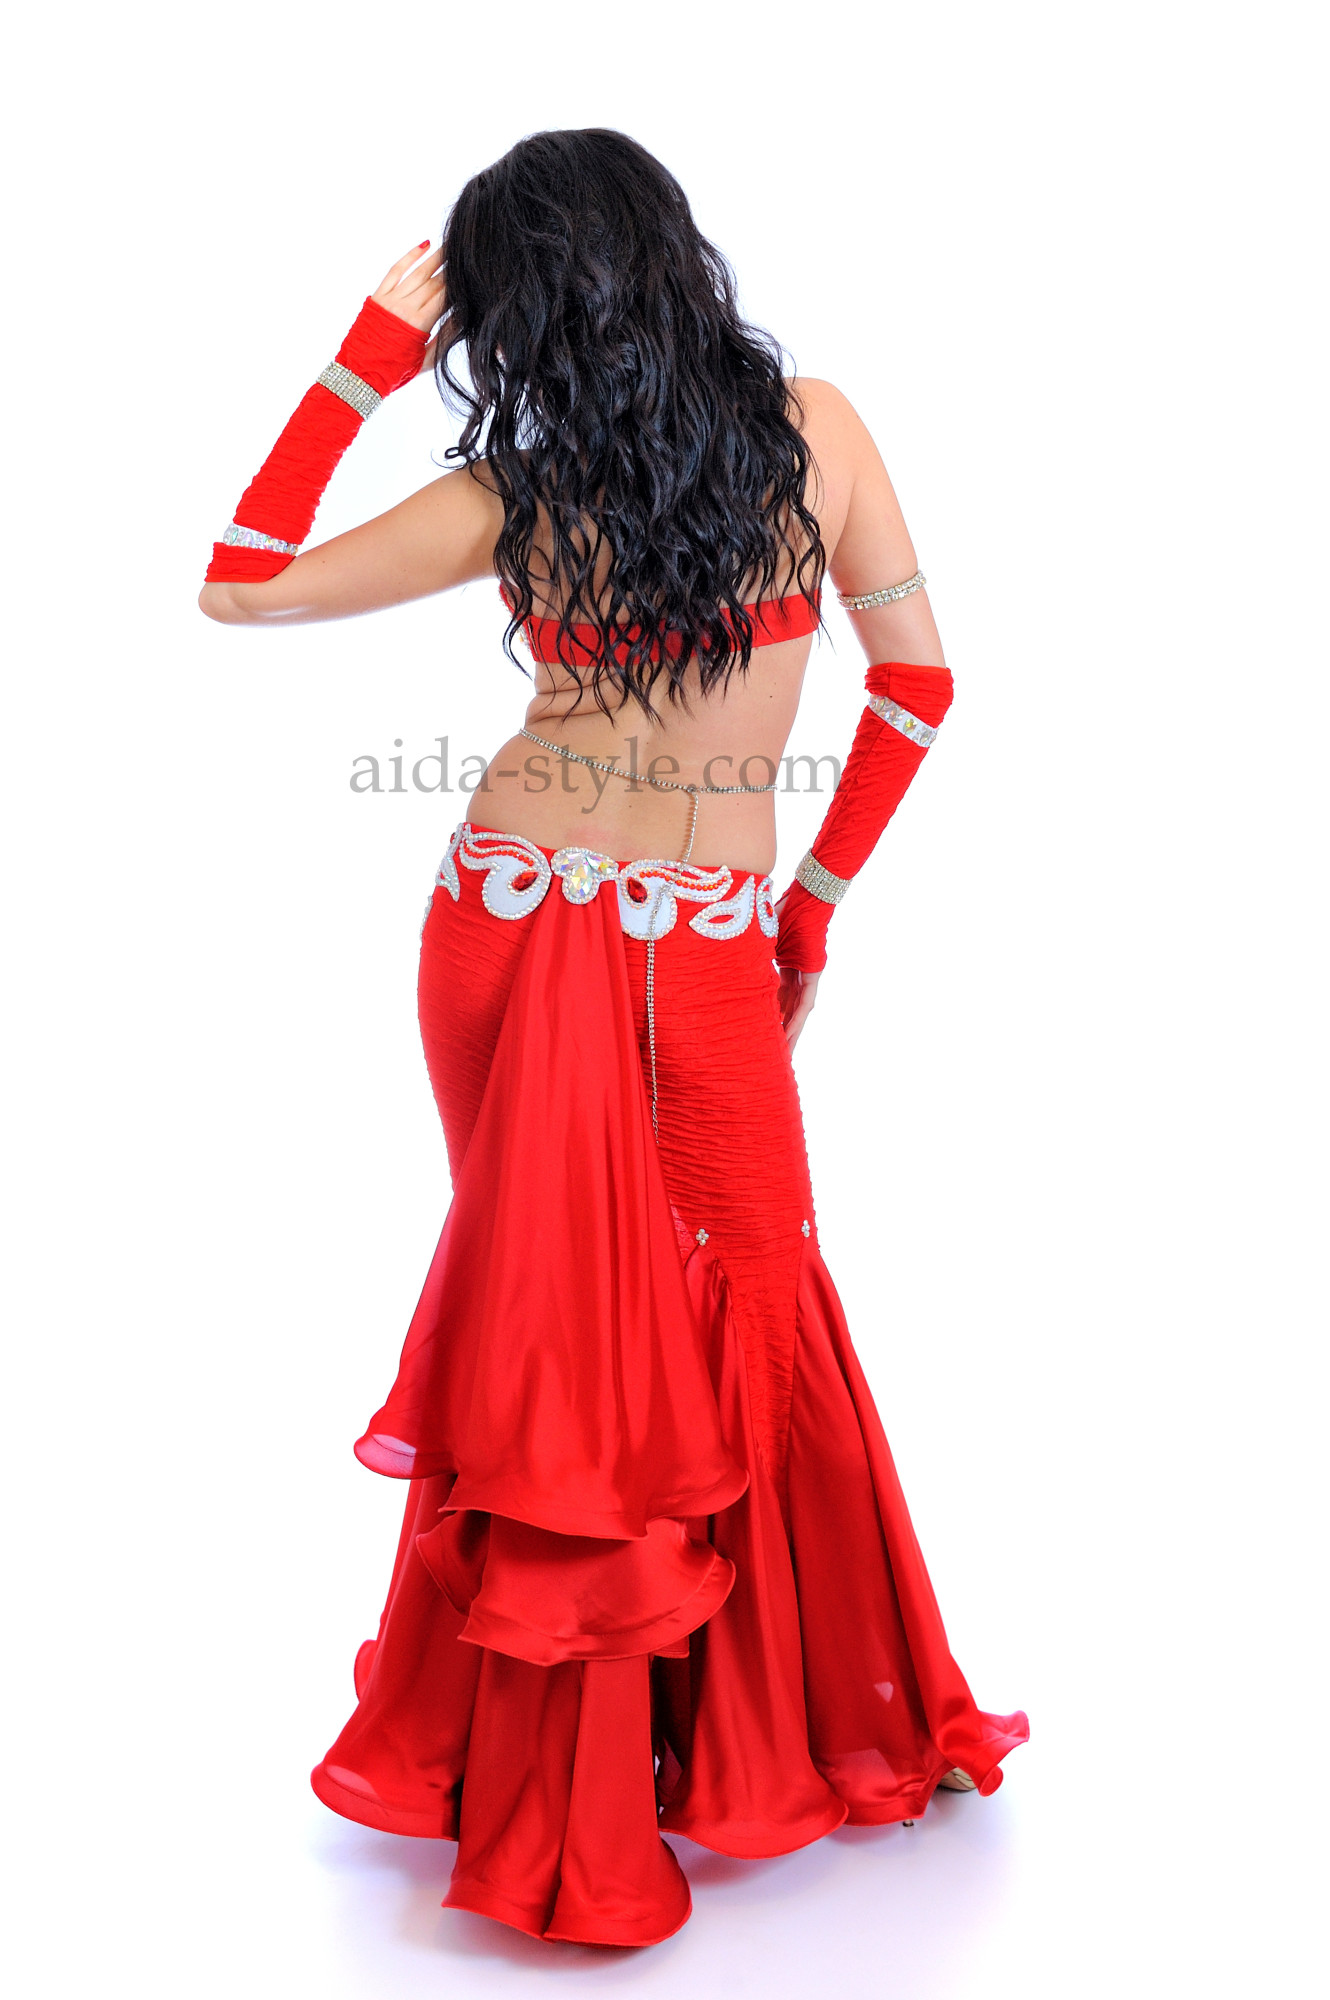 Red professional belly dance suit with white decoration and mermaid skirt